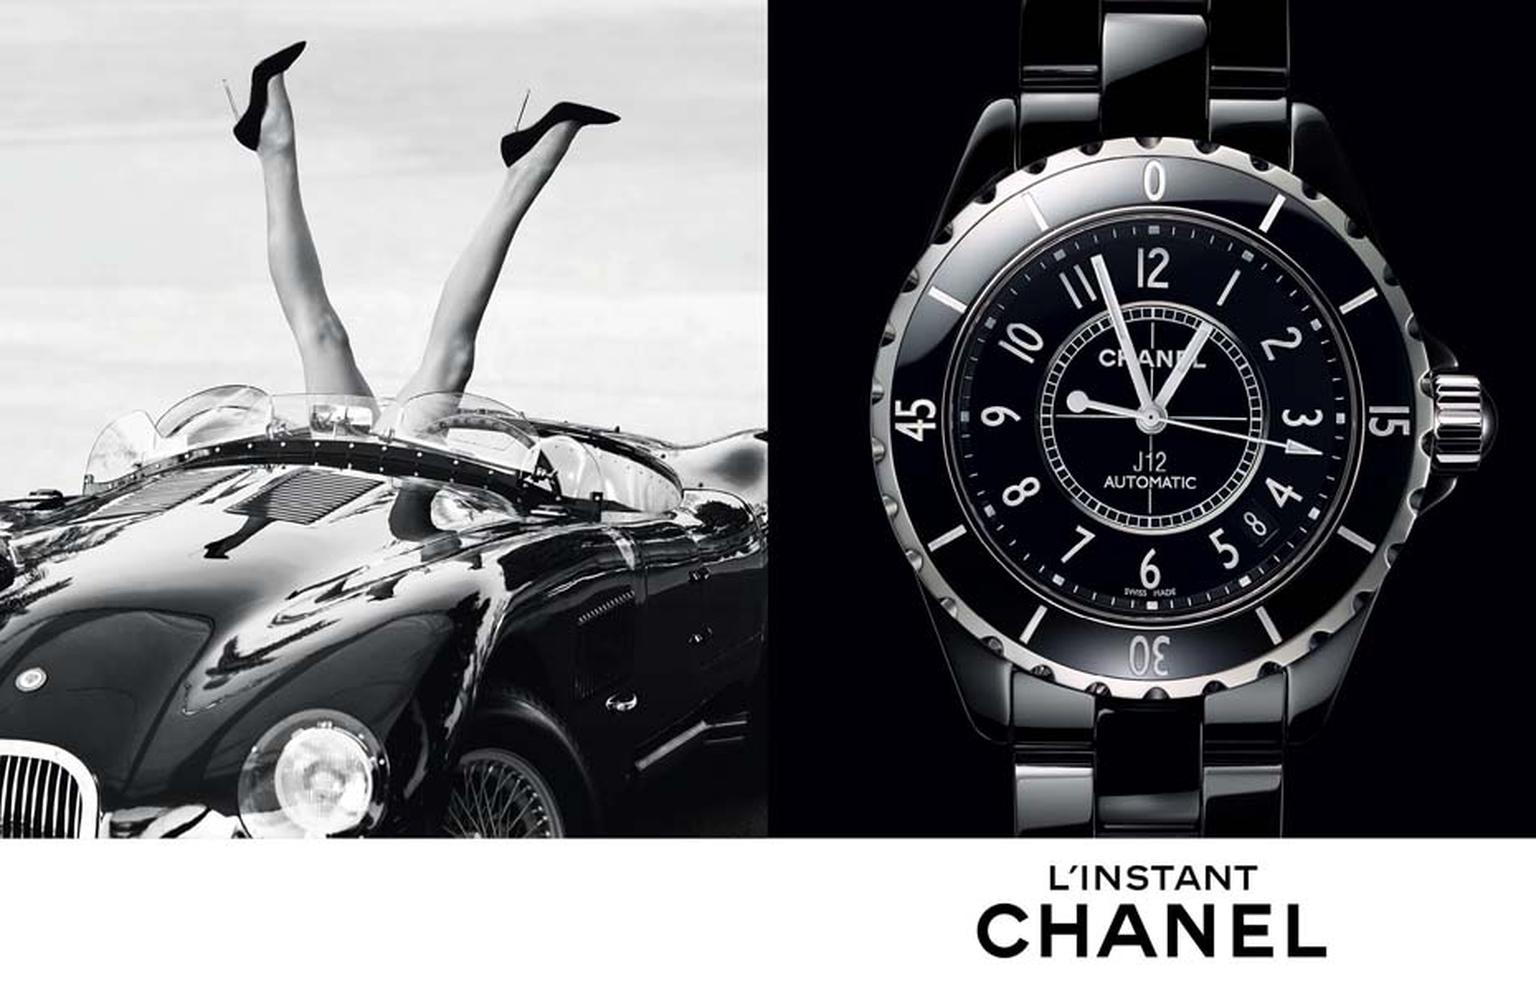 Chanel J12 watch. © CHANEL Horlogerie